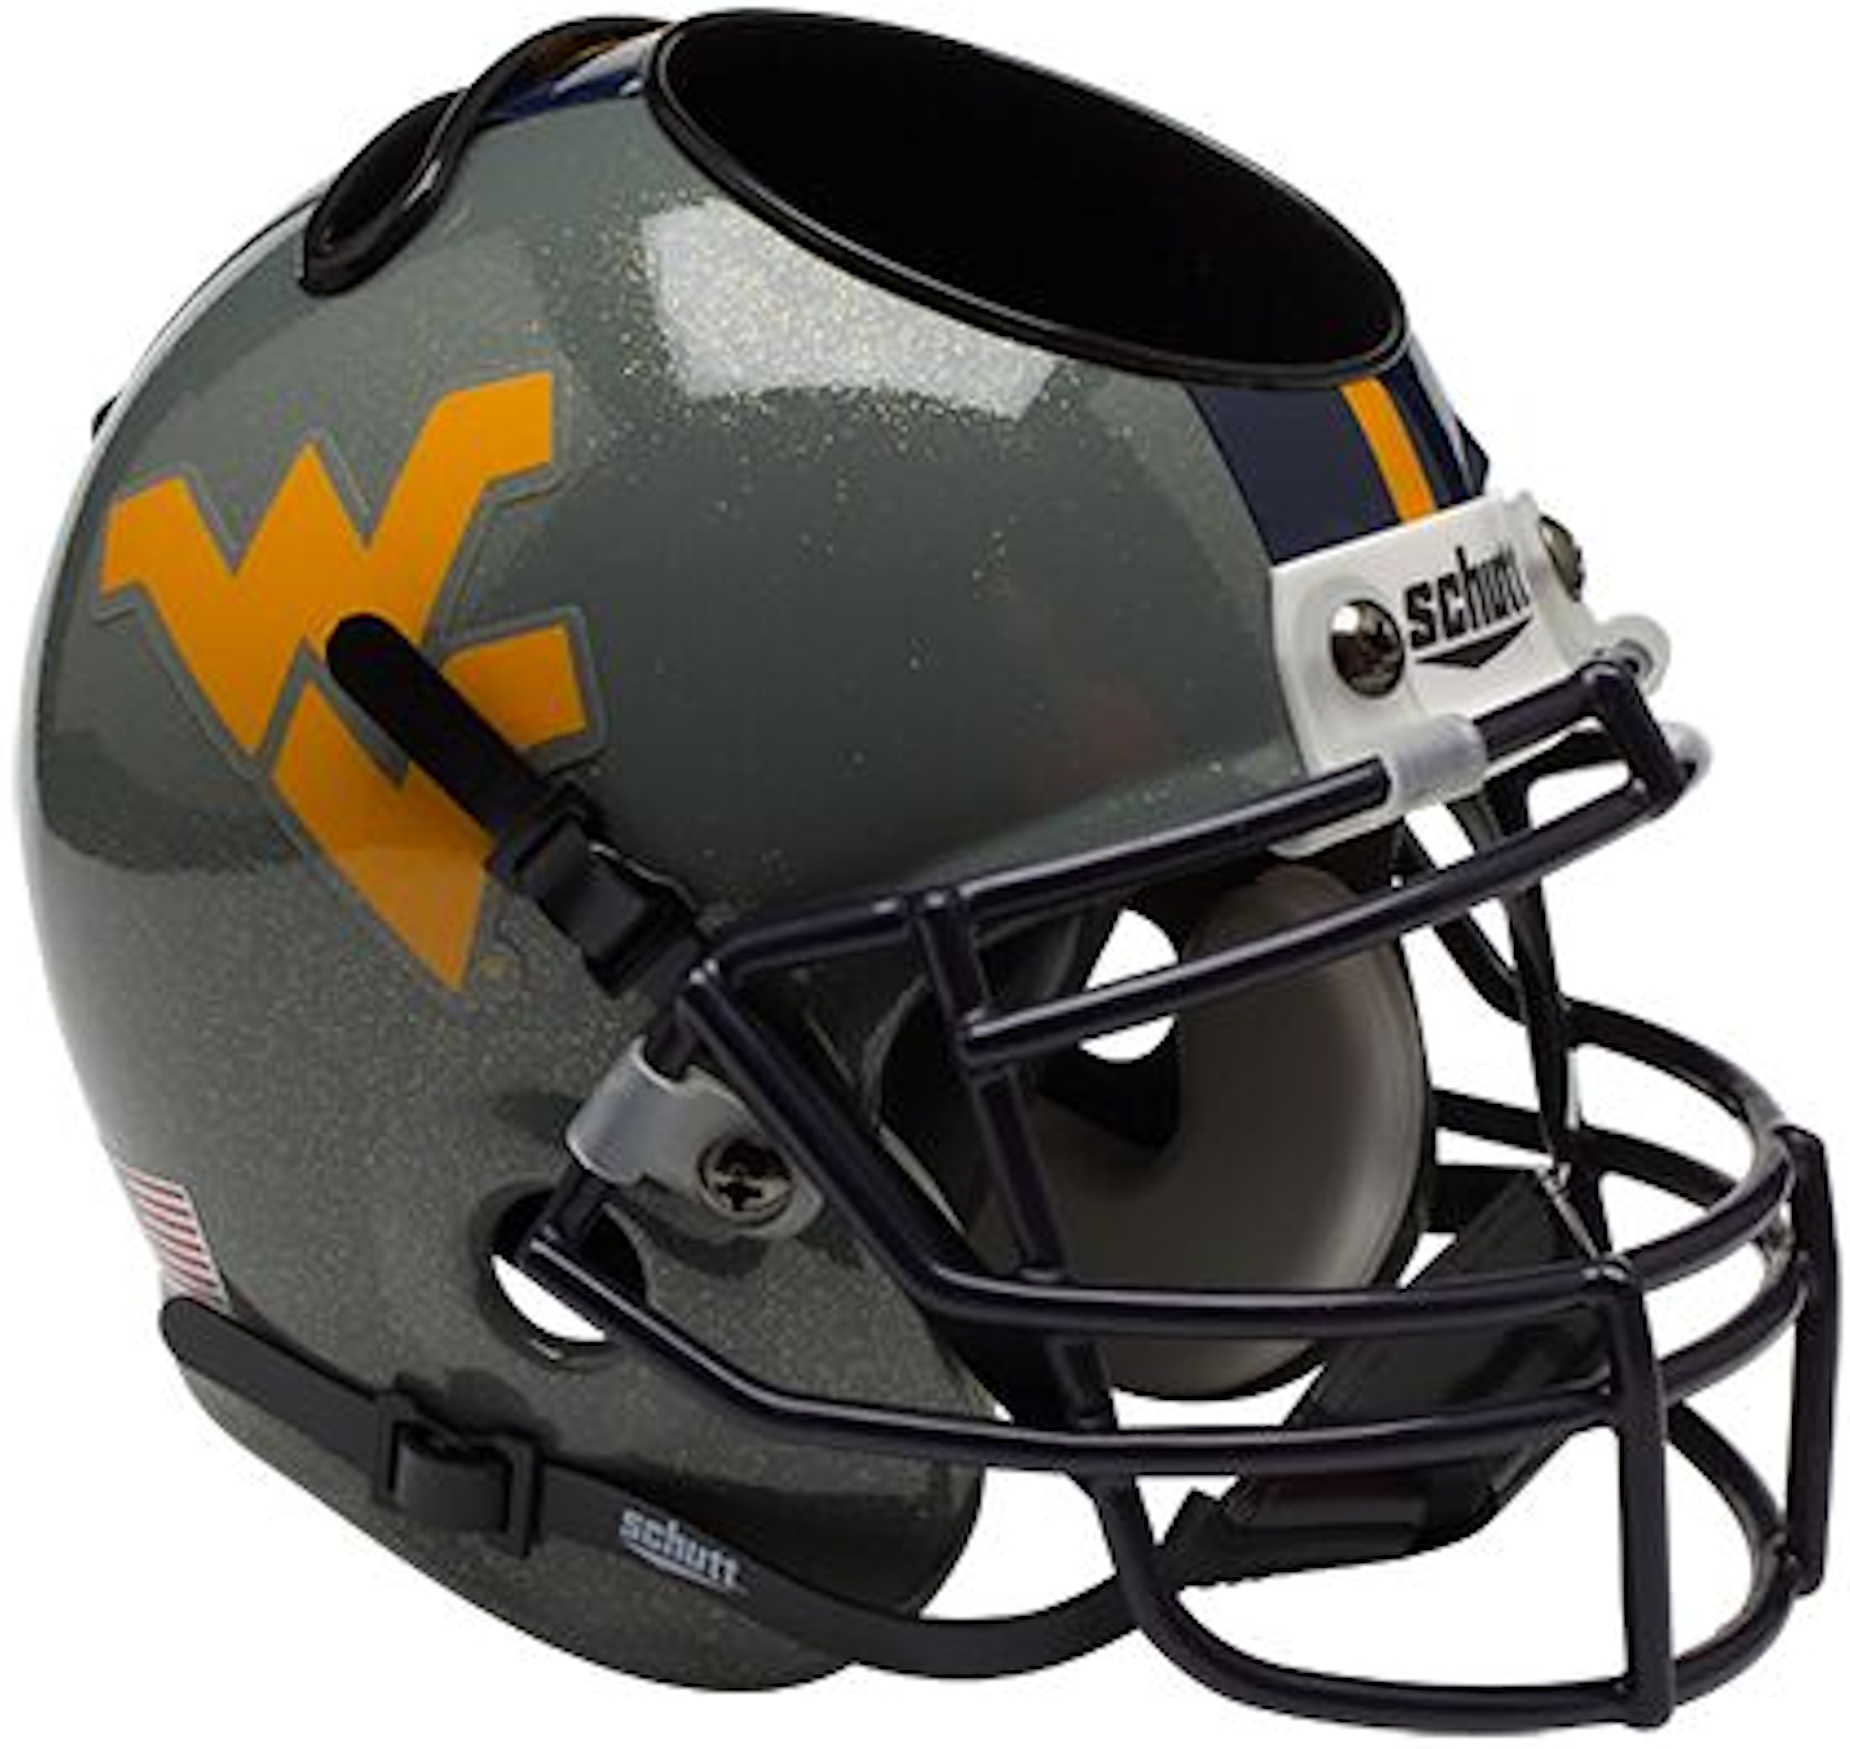 West Virginia Mountaineers Miniature Football Helmet Desk Caddy <B>Gray Sparkles</B>